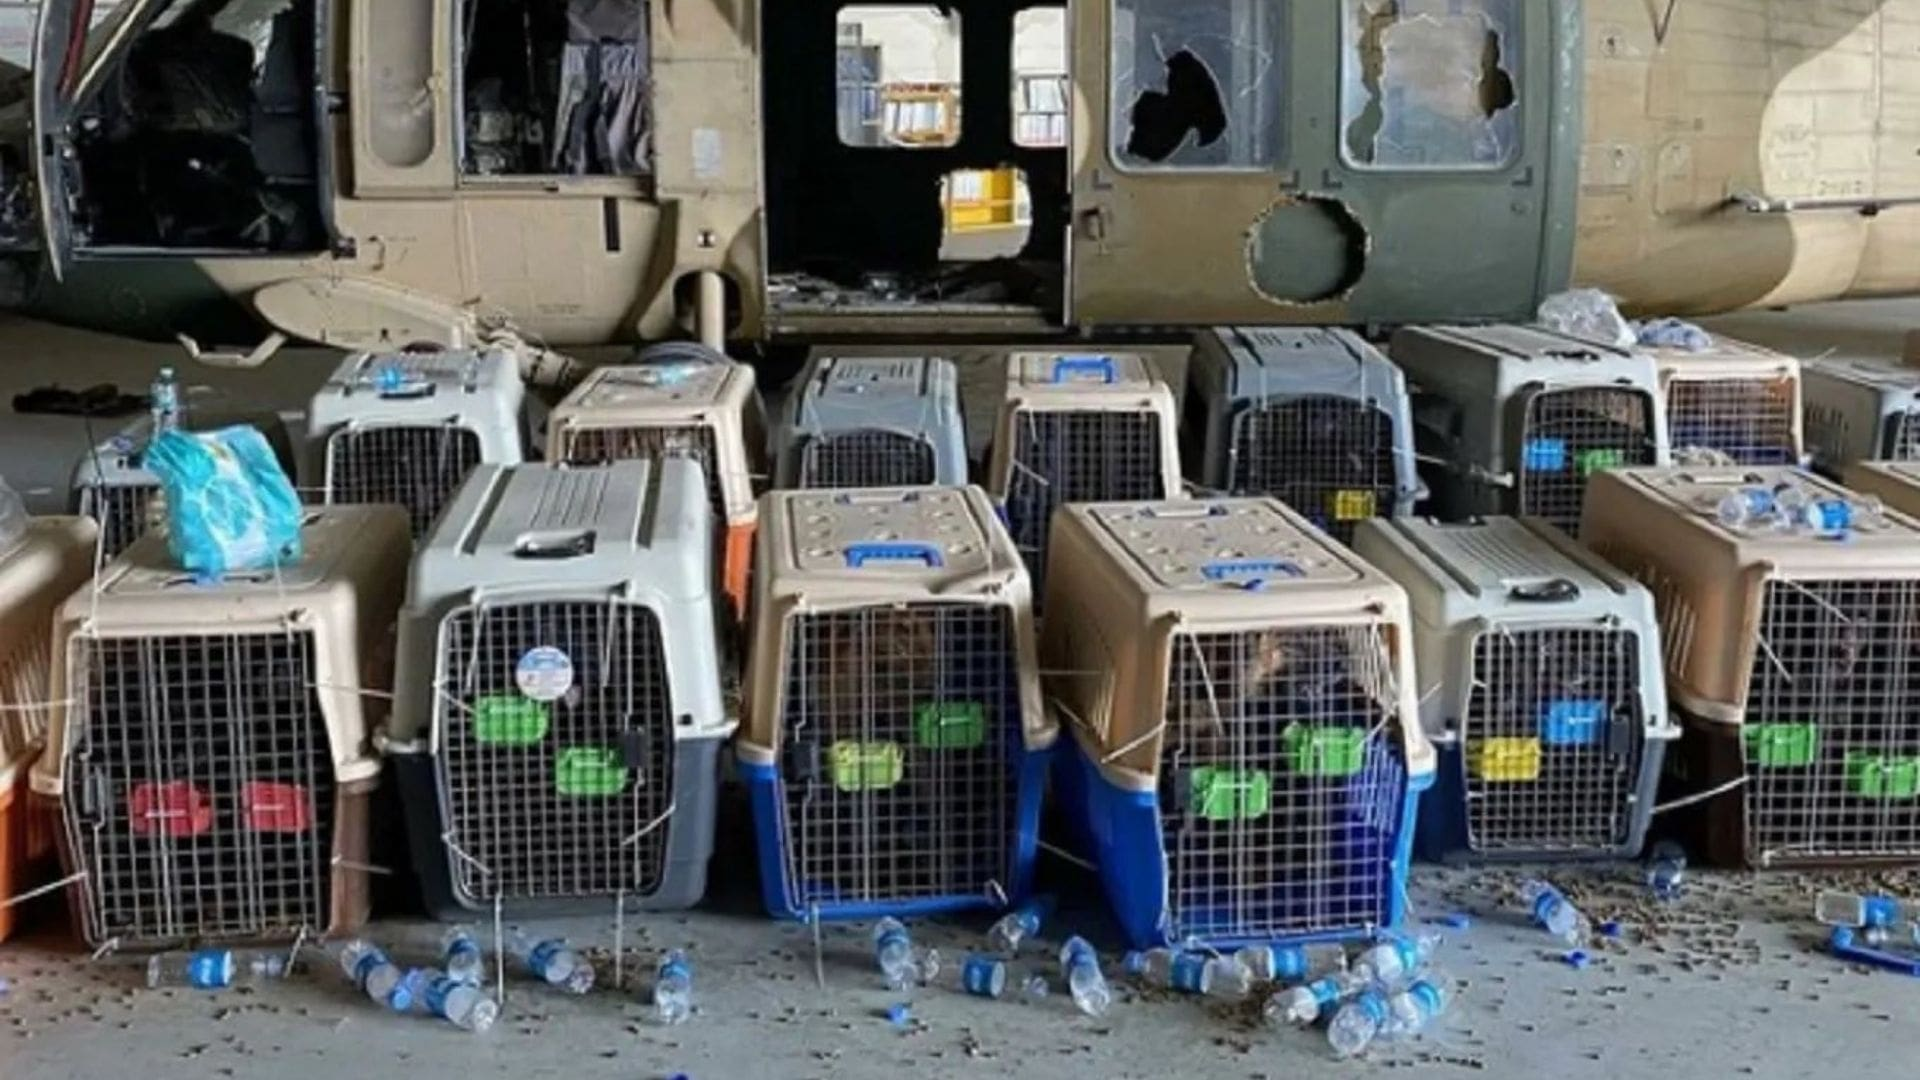 At the last minute, dogs and cats were denied their flight to freedom. WITH YOUR CONTINUED HELP we will continue to do EVERYTHING IN OUR POWER to SAVE THEM! 3